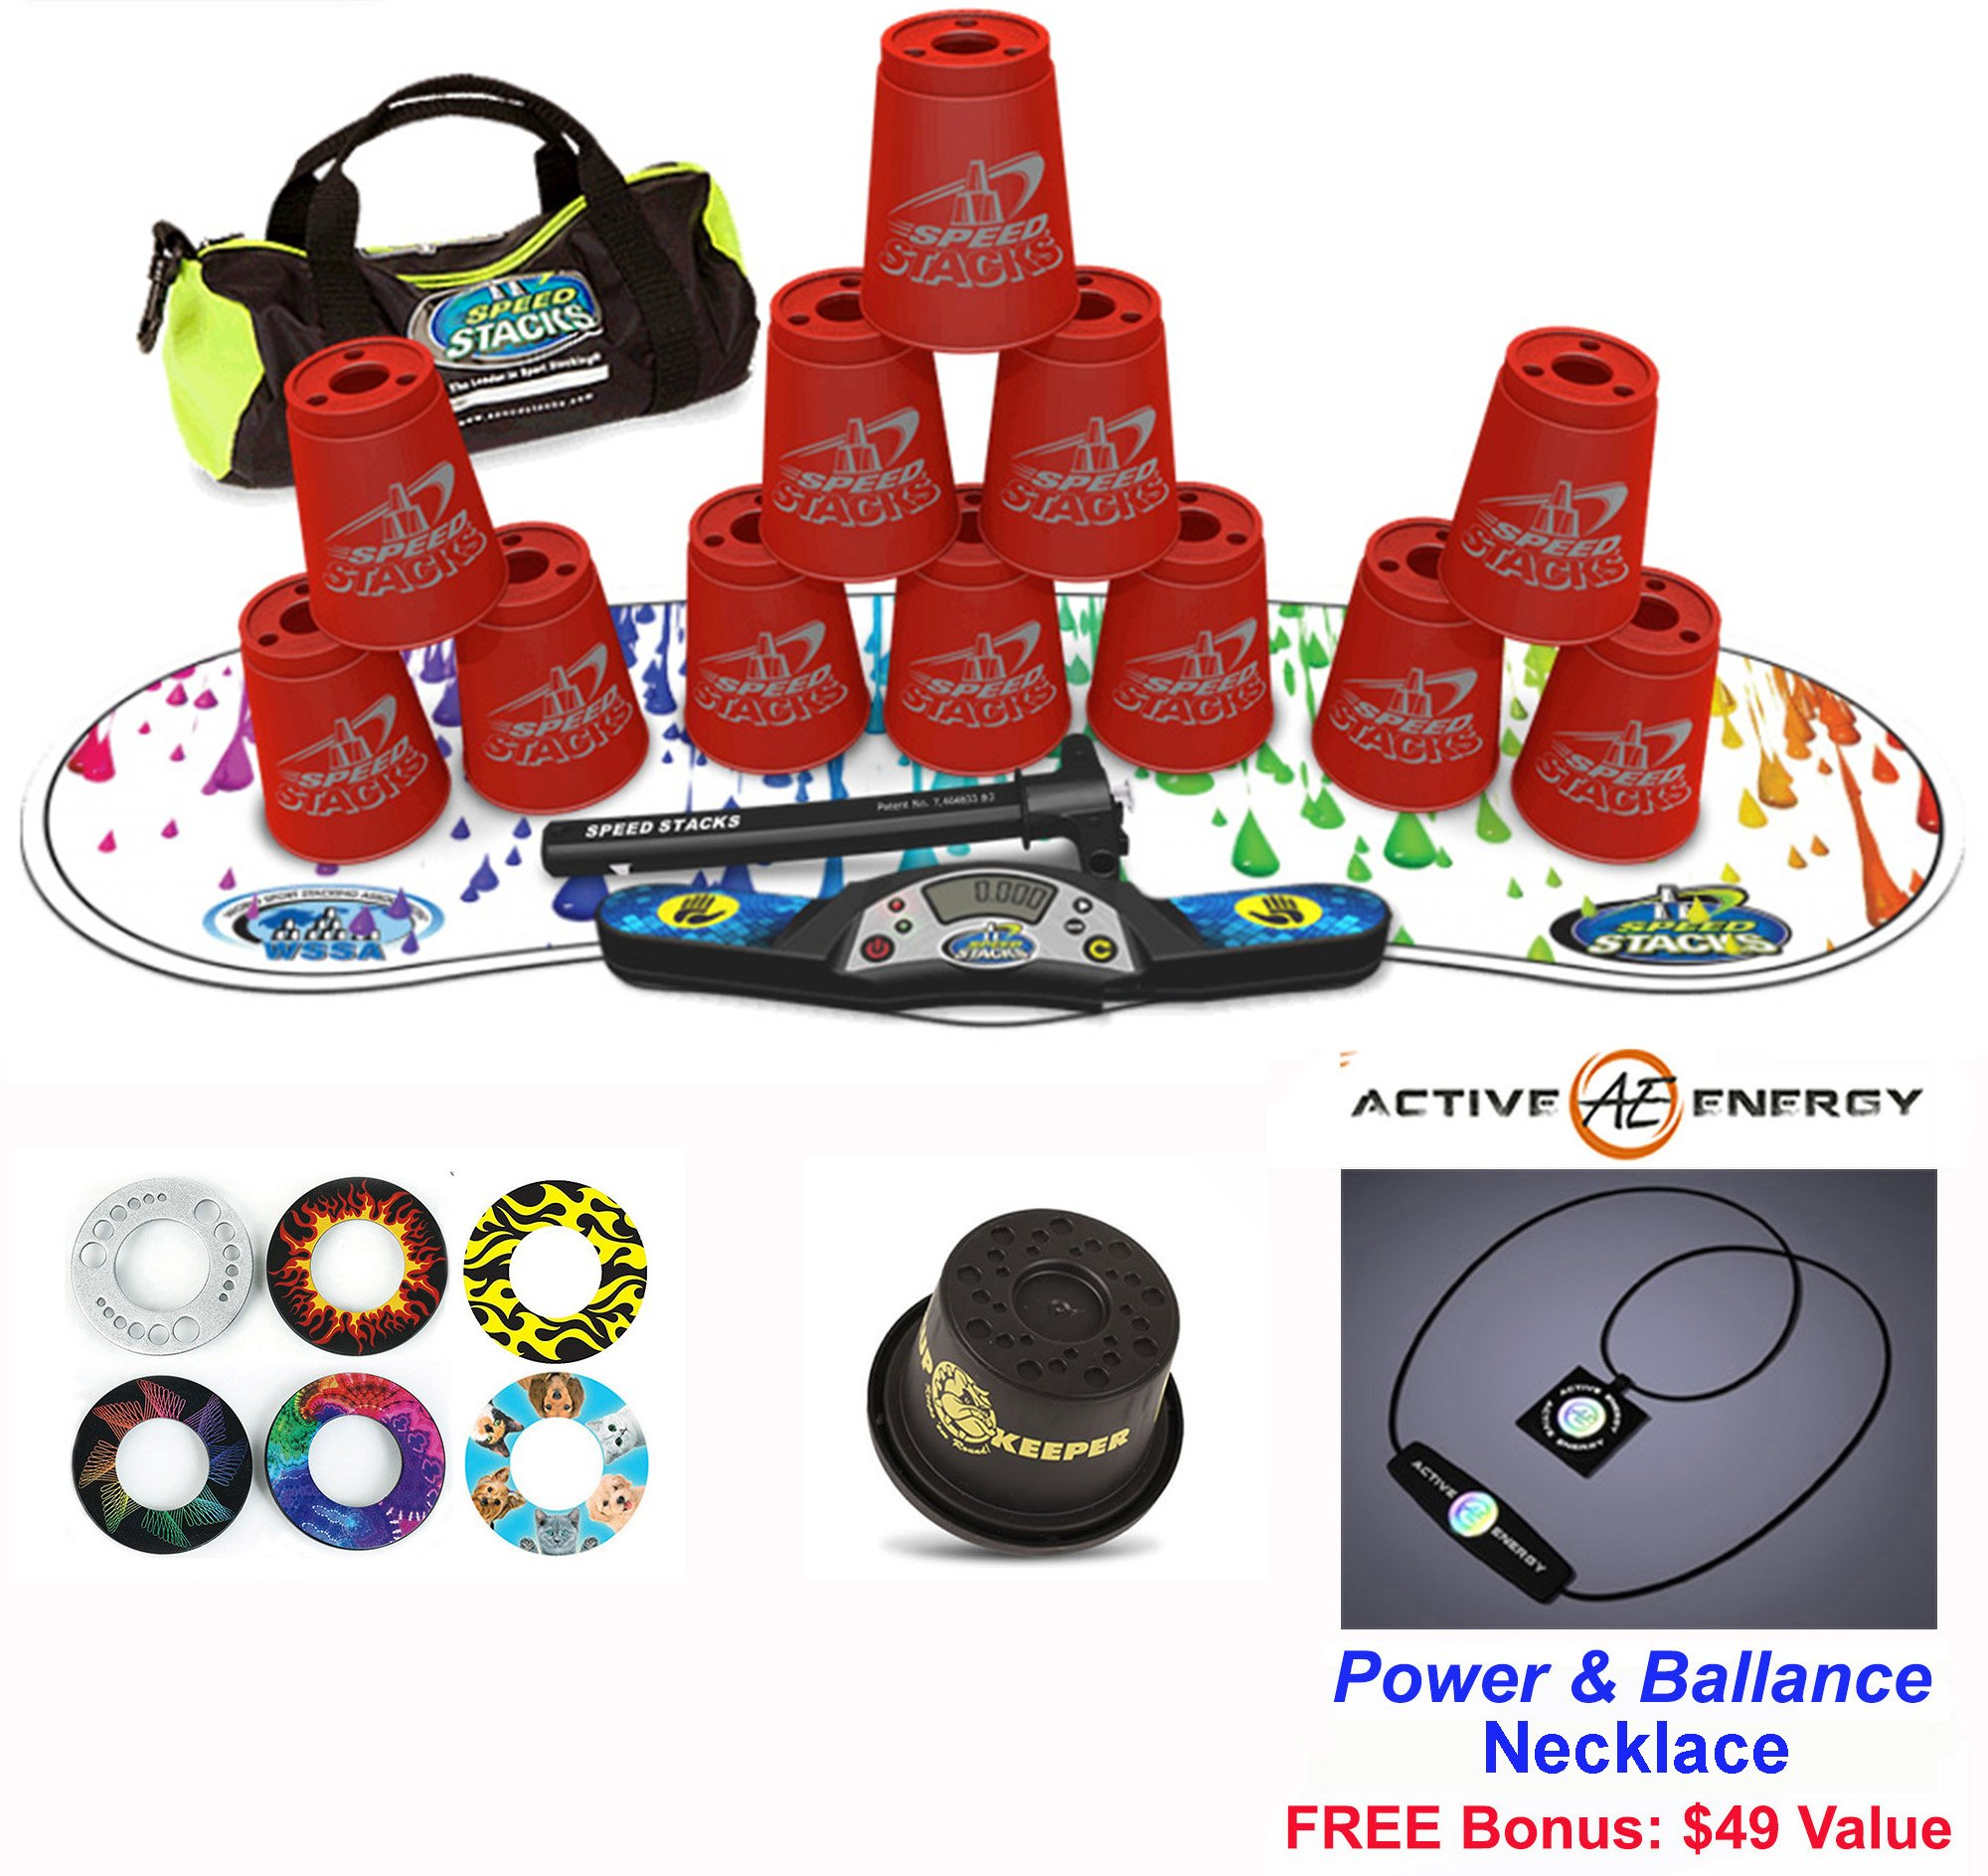 Speed Stacks Combo Set ''The Works'': 12 RED 4'' Cups, RAINBOW DROP Gen 3 Mat, G4 Pro Timer, Cup Keeper, Stem, Gear Bag + Active Energy Necklace